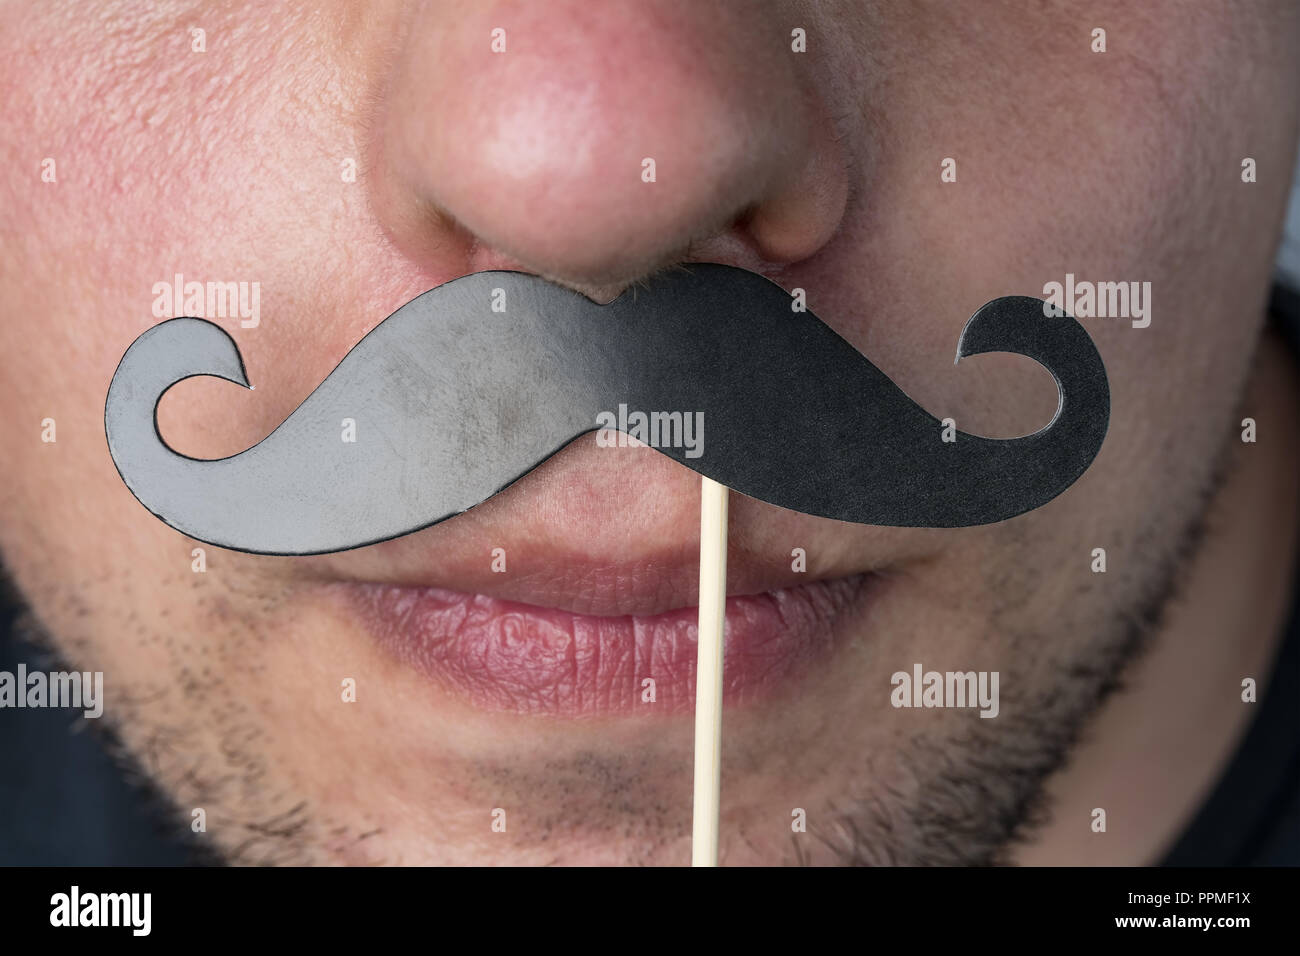 Man with photo booth prop moustache for november cancer awareness month. - Stock Image